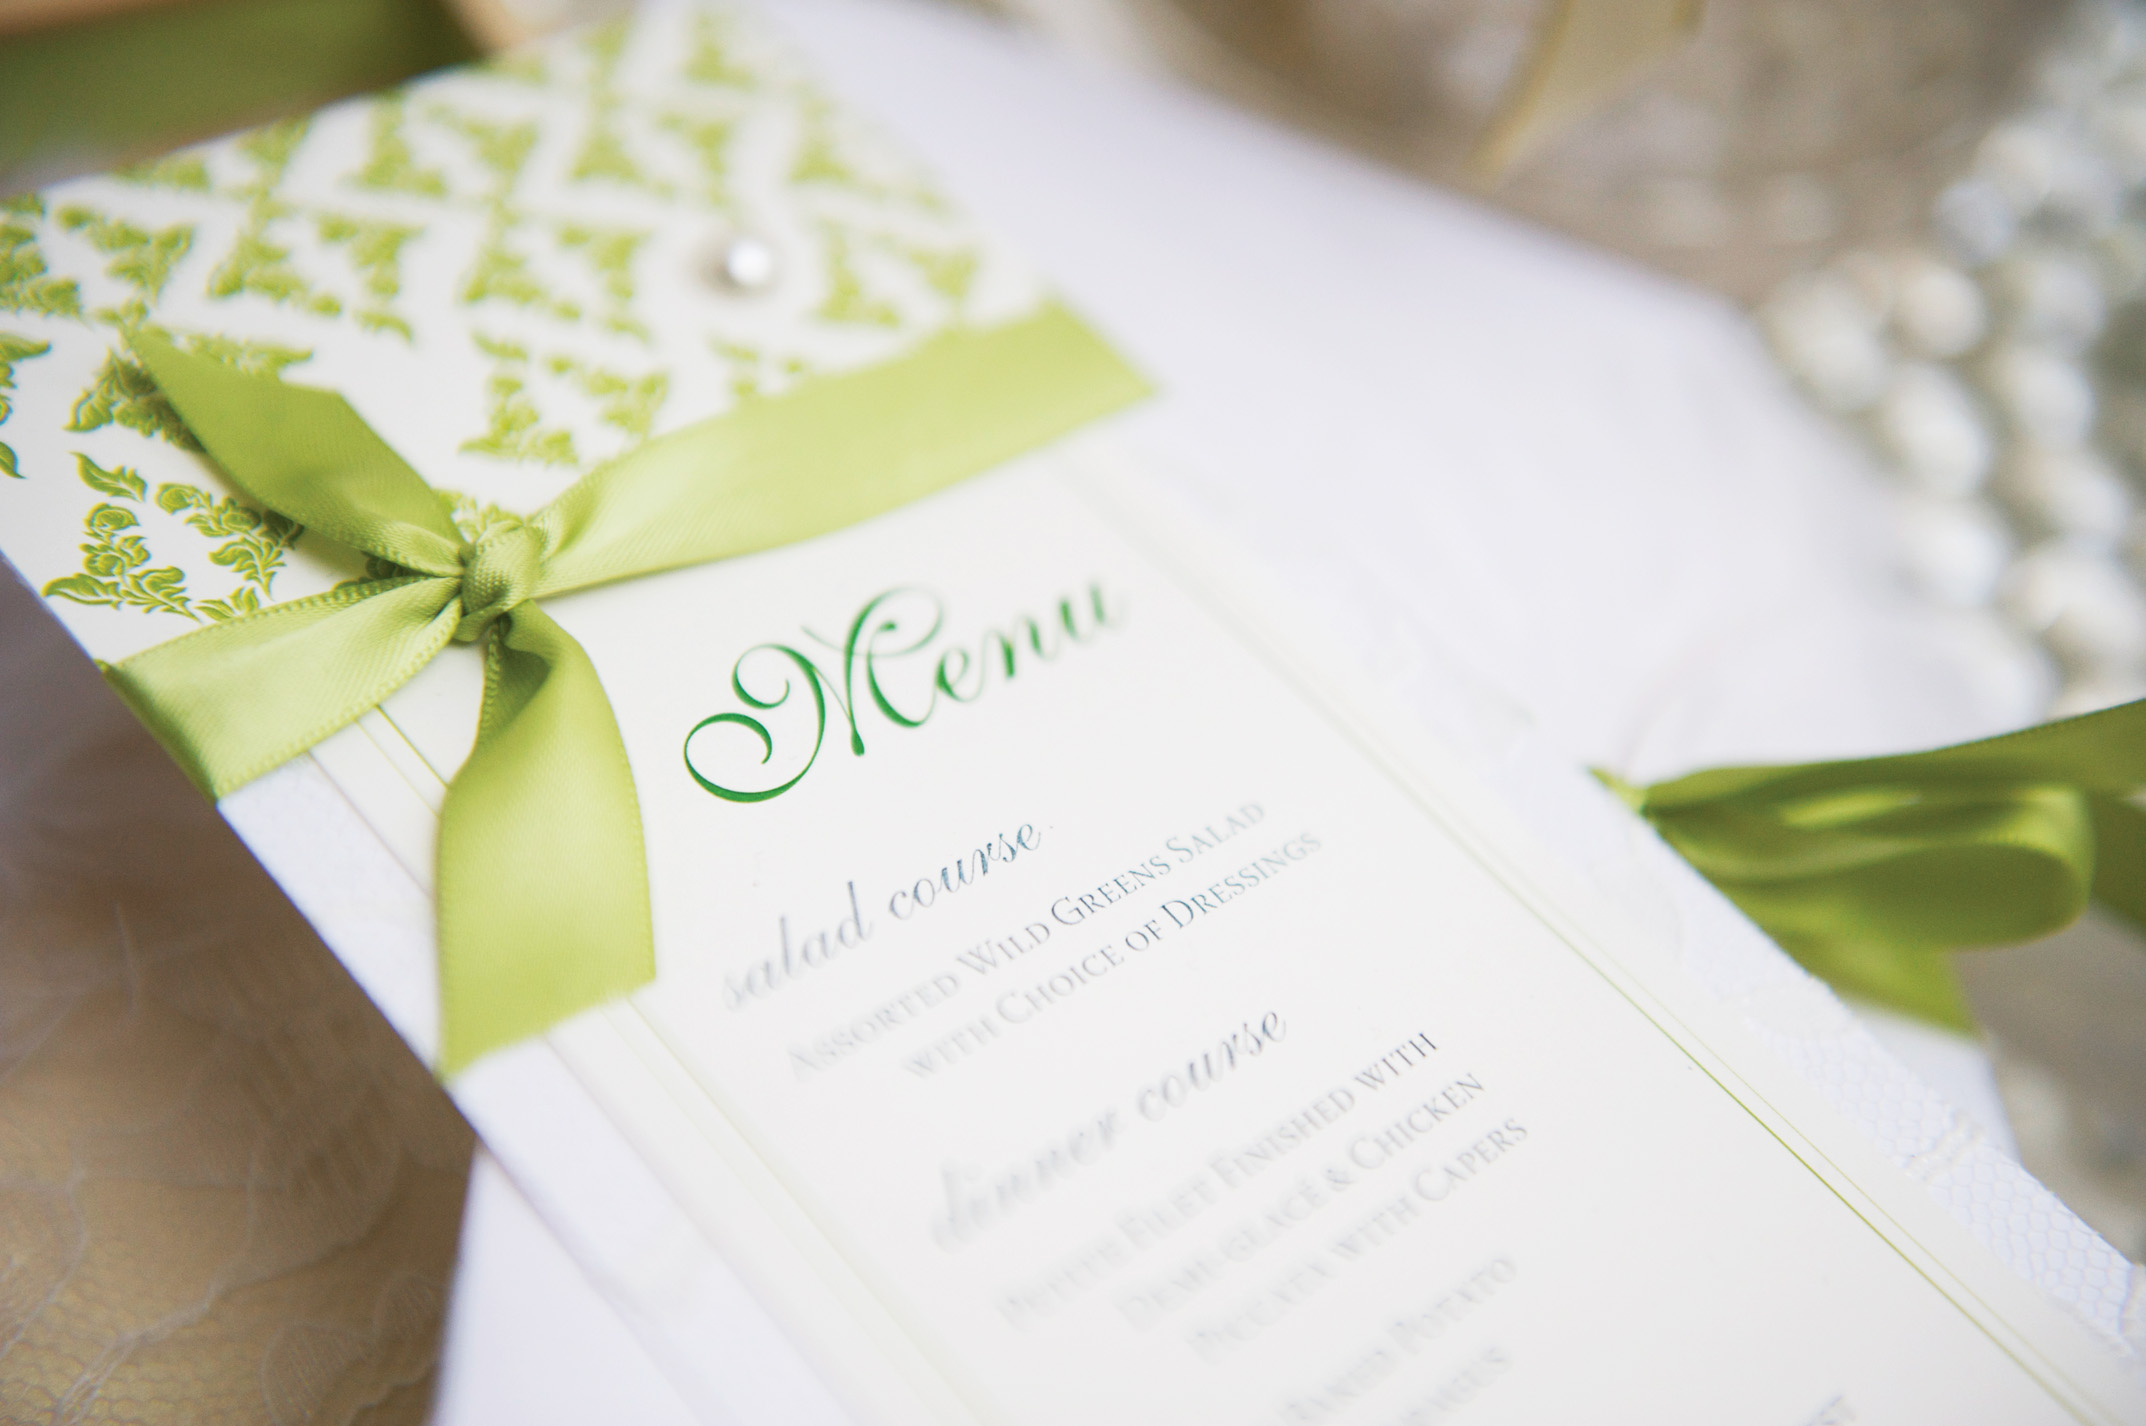 Stults Wedding Menu Detail.jpg